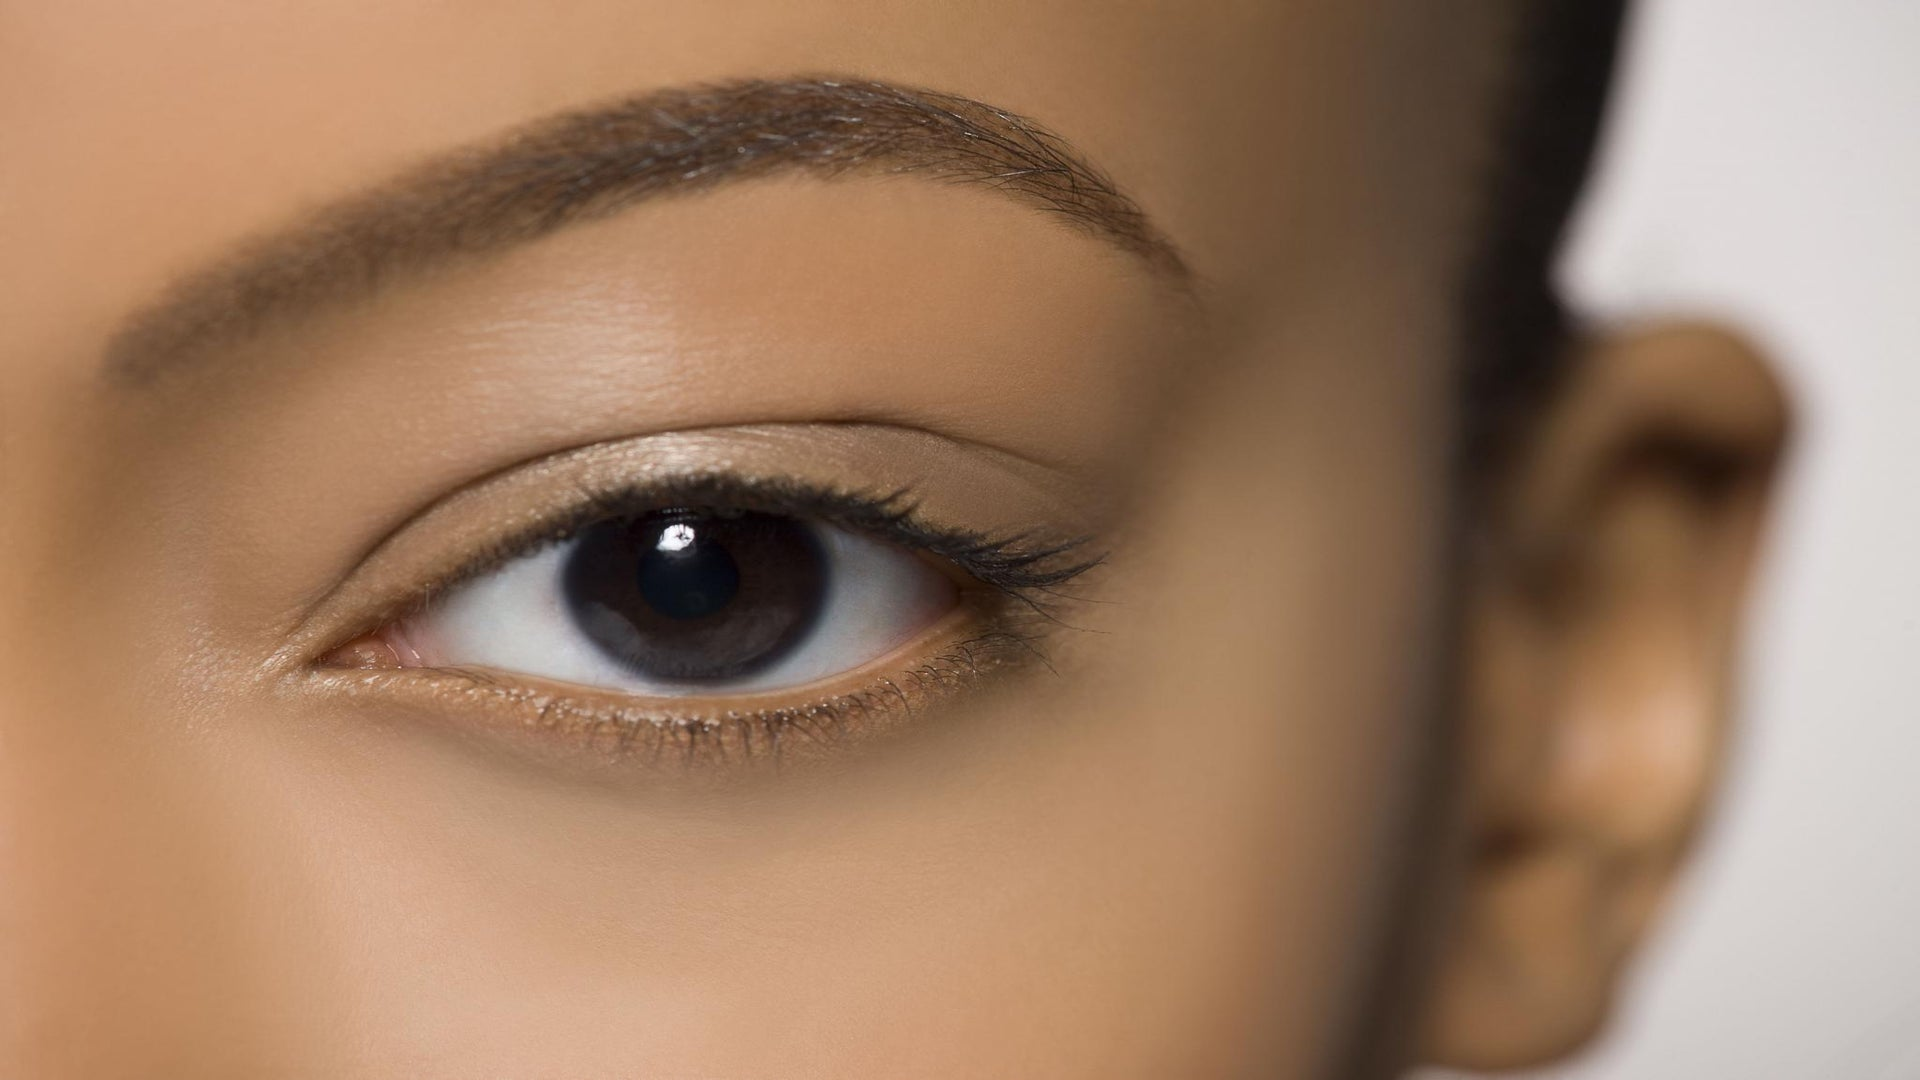 8 Growth Products for the Thicker, Fuller Brows You've Always Wanted